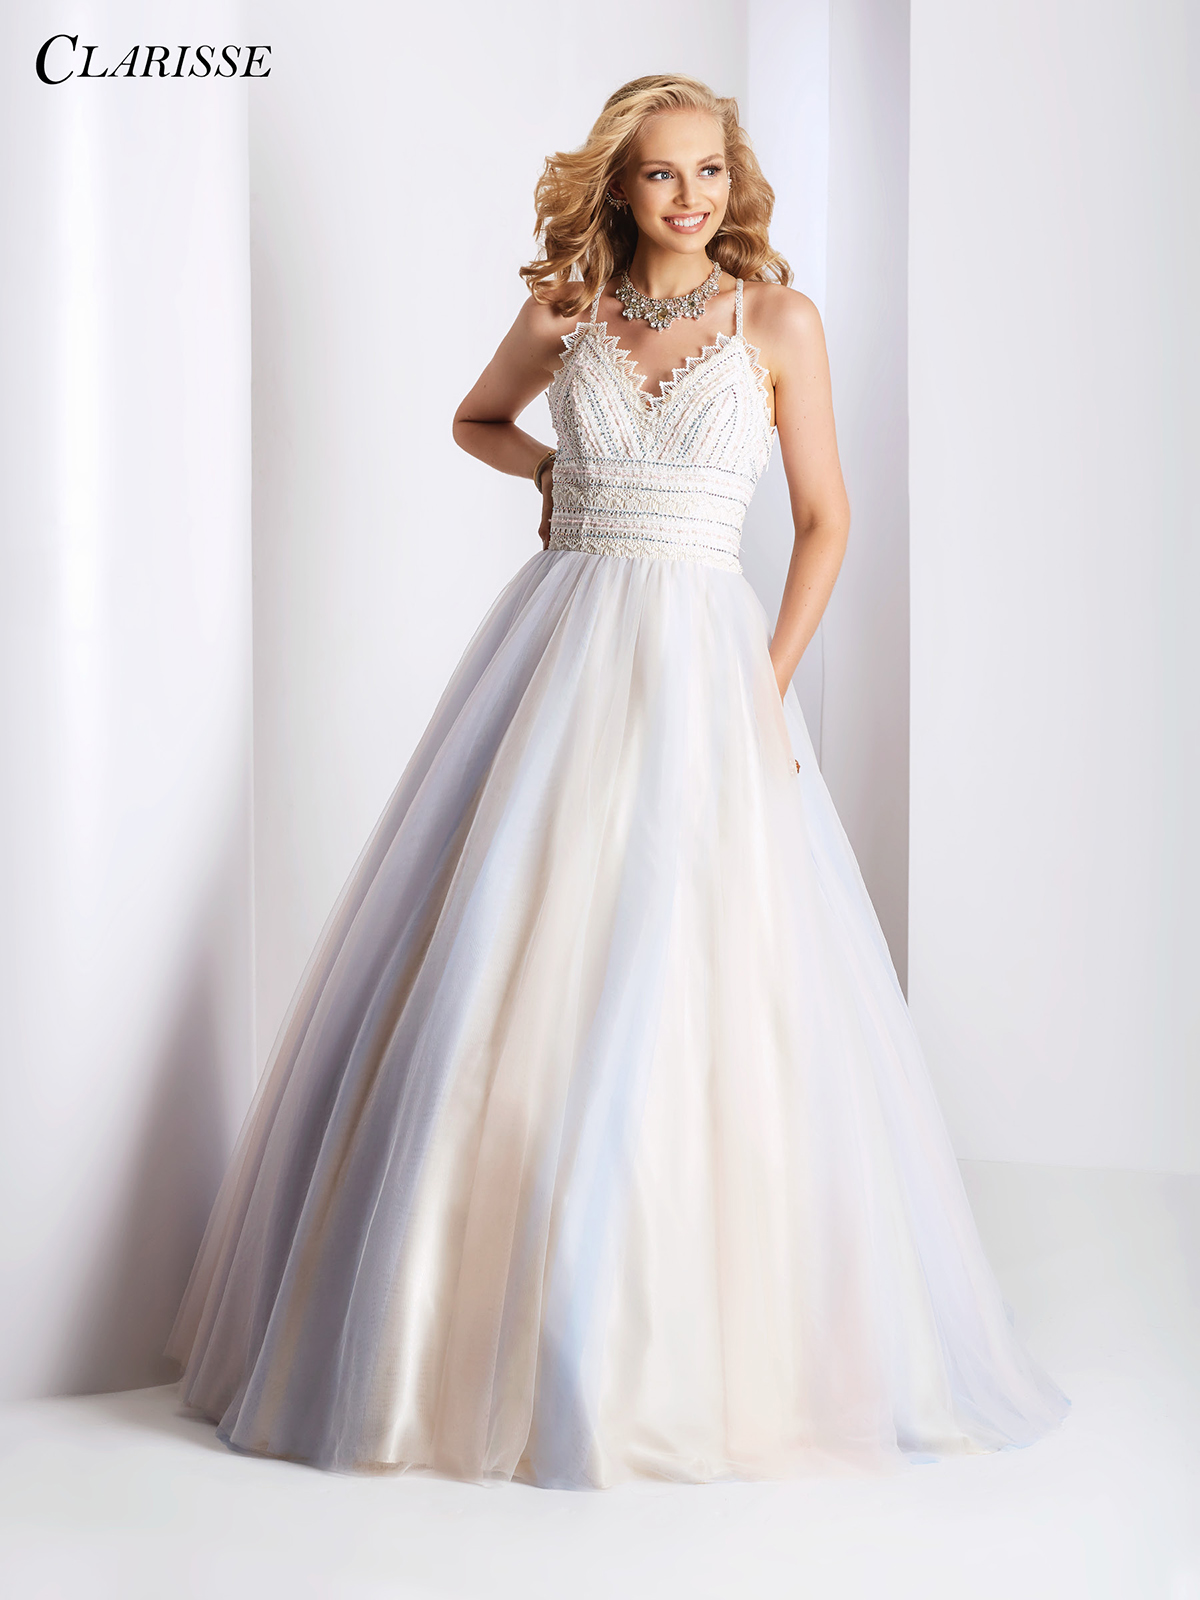 2018 Prom Dress Clarisse 3503 | Promgirl.net